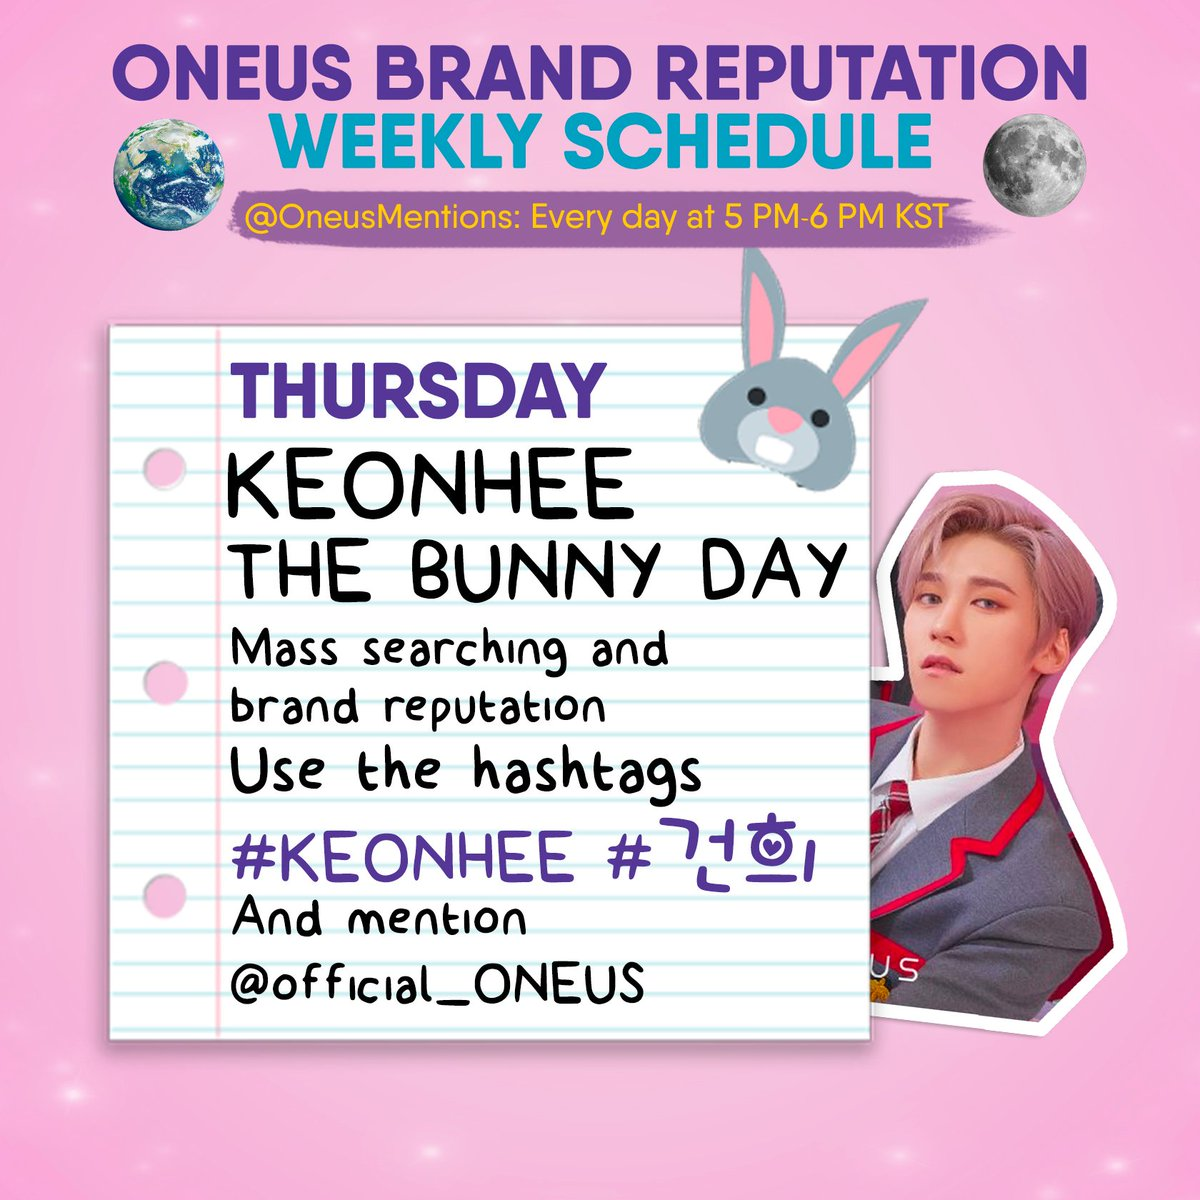 🐰[KEONHEE'S BRAND REPUTATION DAY]   Retweet and reply with:   🎹 10 musical instruments(reference below) 🎵 All B-sides songs   Use the tags:    #건희 #KEONHEE  KEONHEE THE BUNNY DAY  #원어스 @\official_ONEUS